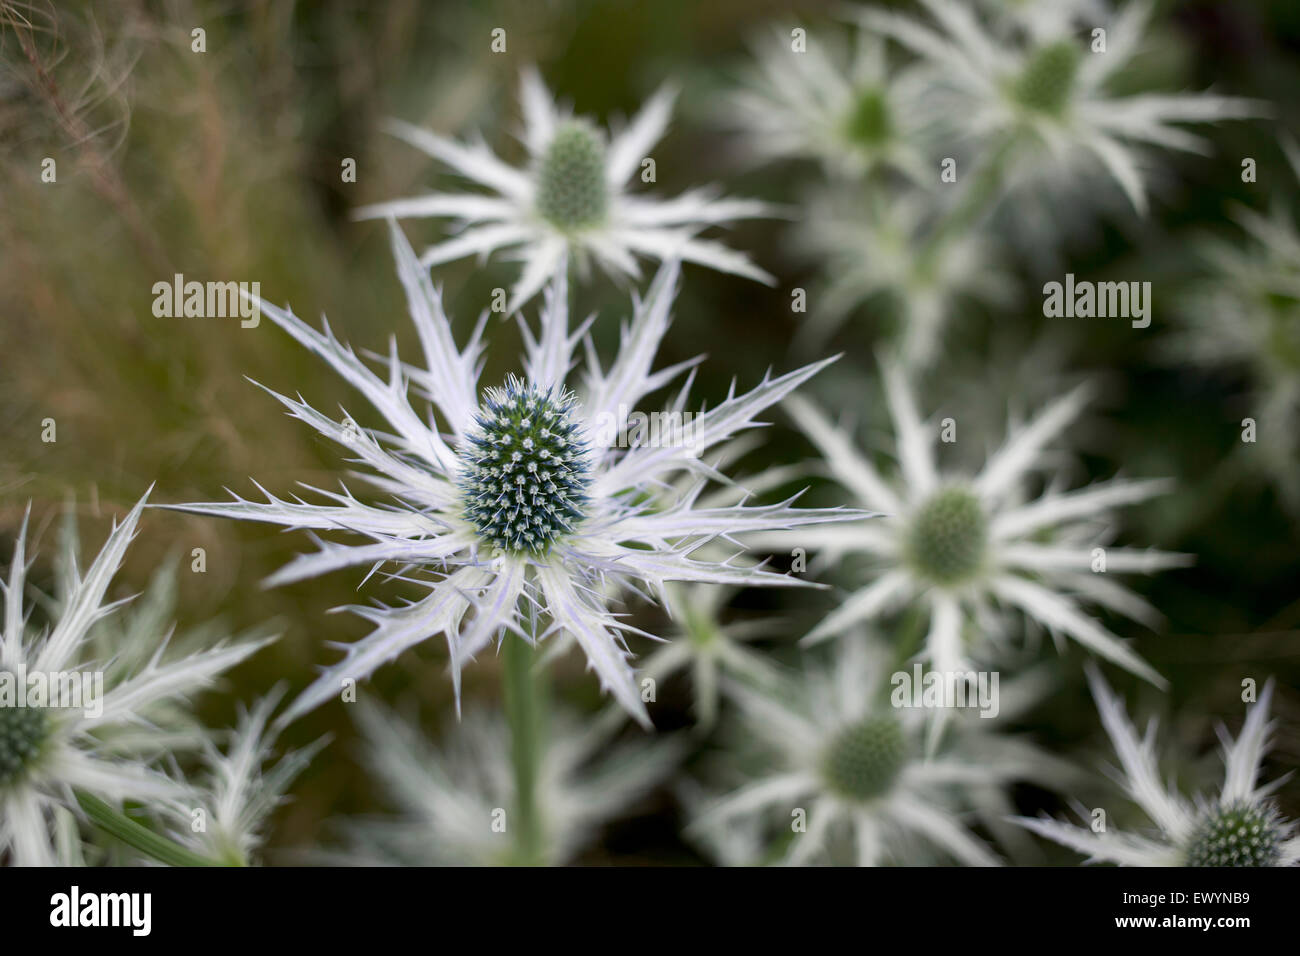 thistle spiked flowers on display at the RHS Hampton Court Flower Show 2015 - Stock Image